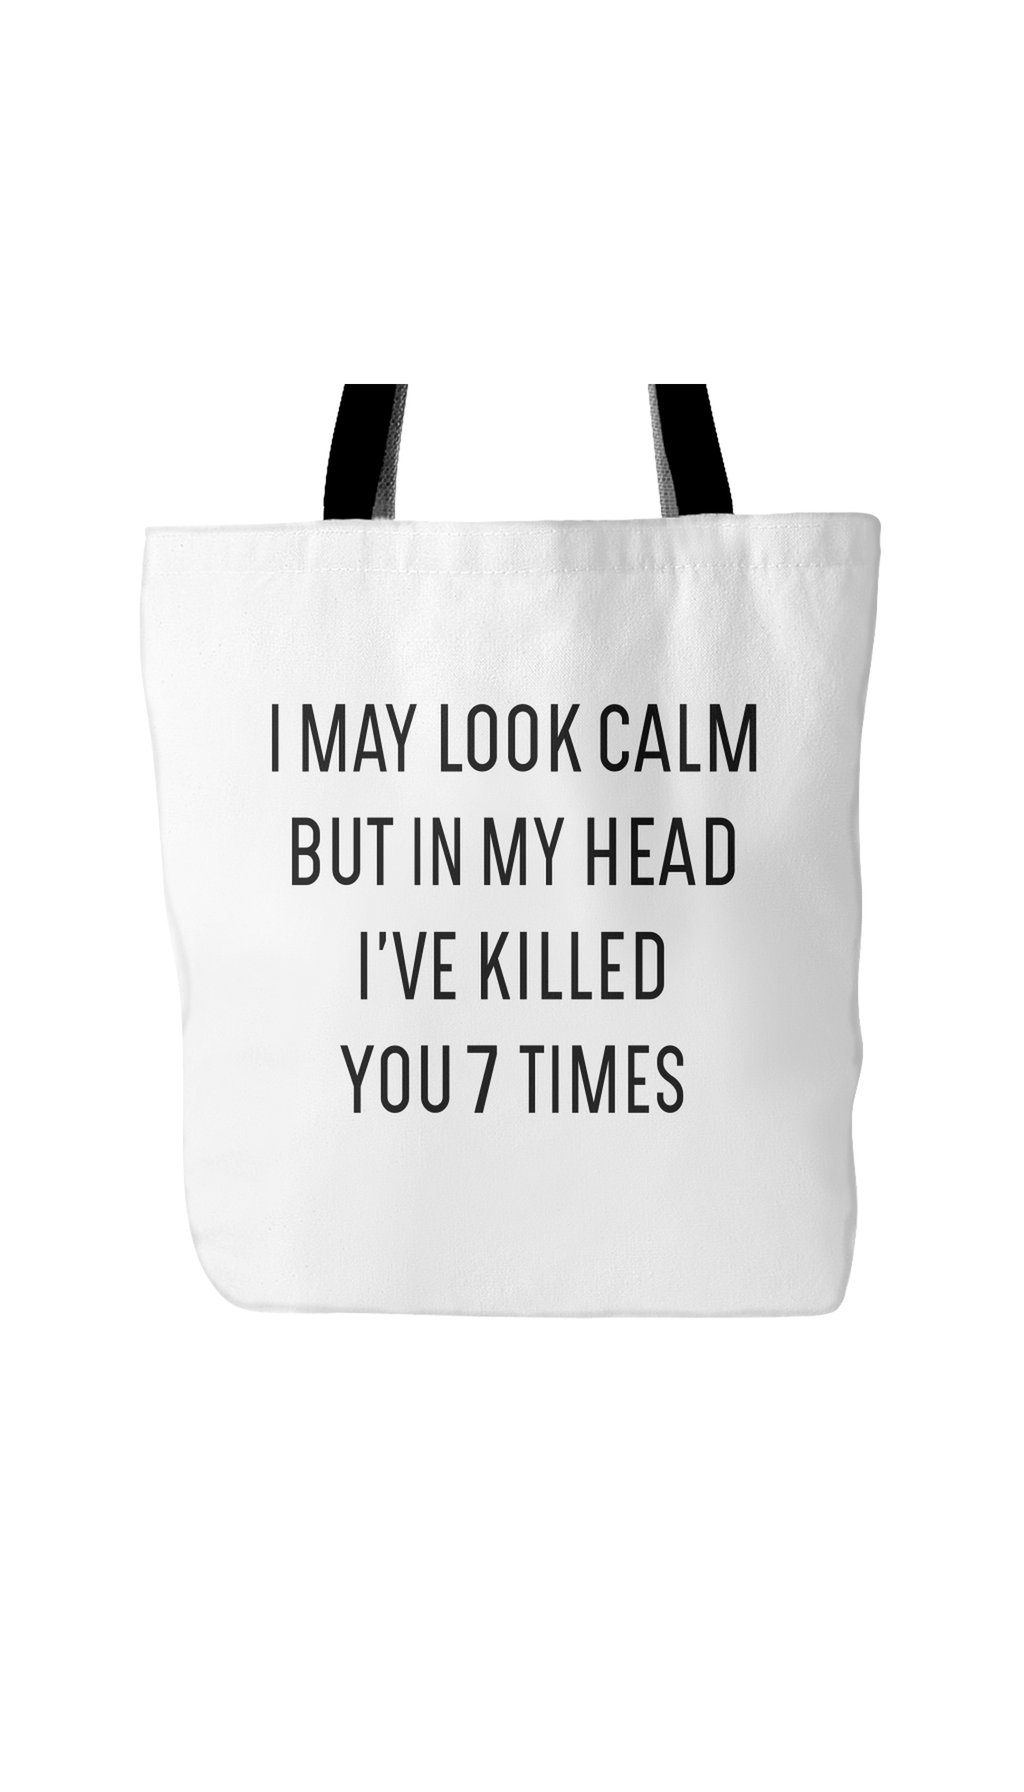 I May Look Calm But In My Head I've Killed You 7 Times White Tote Bag | Sarcastic Me